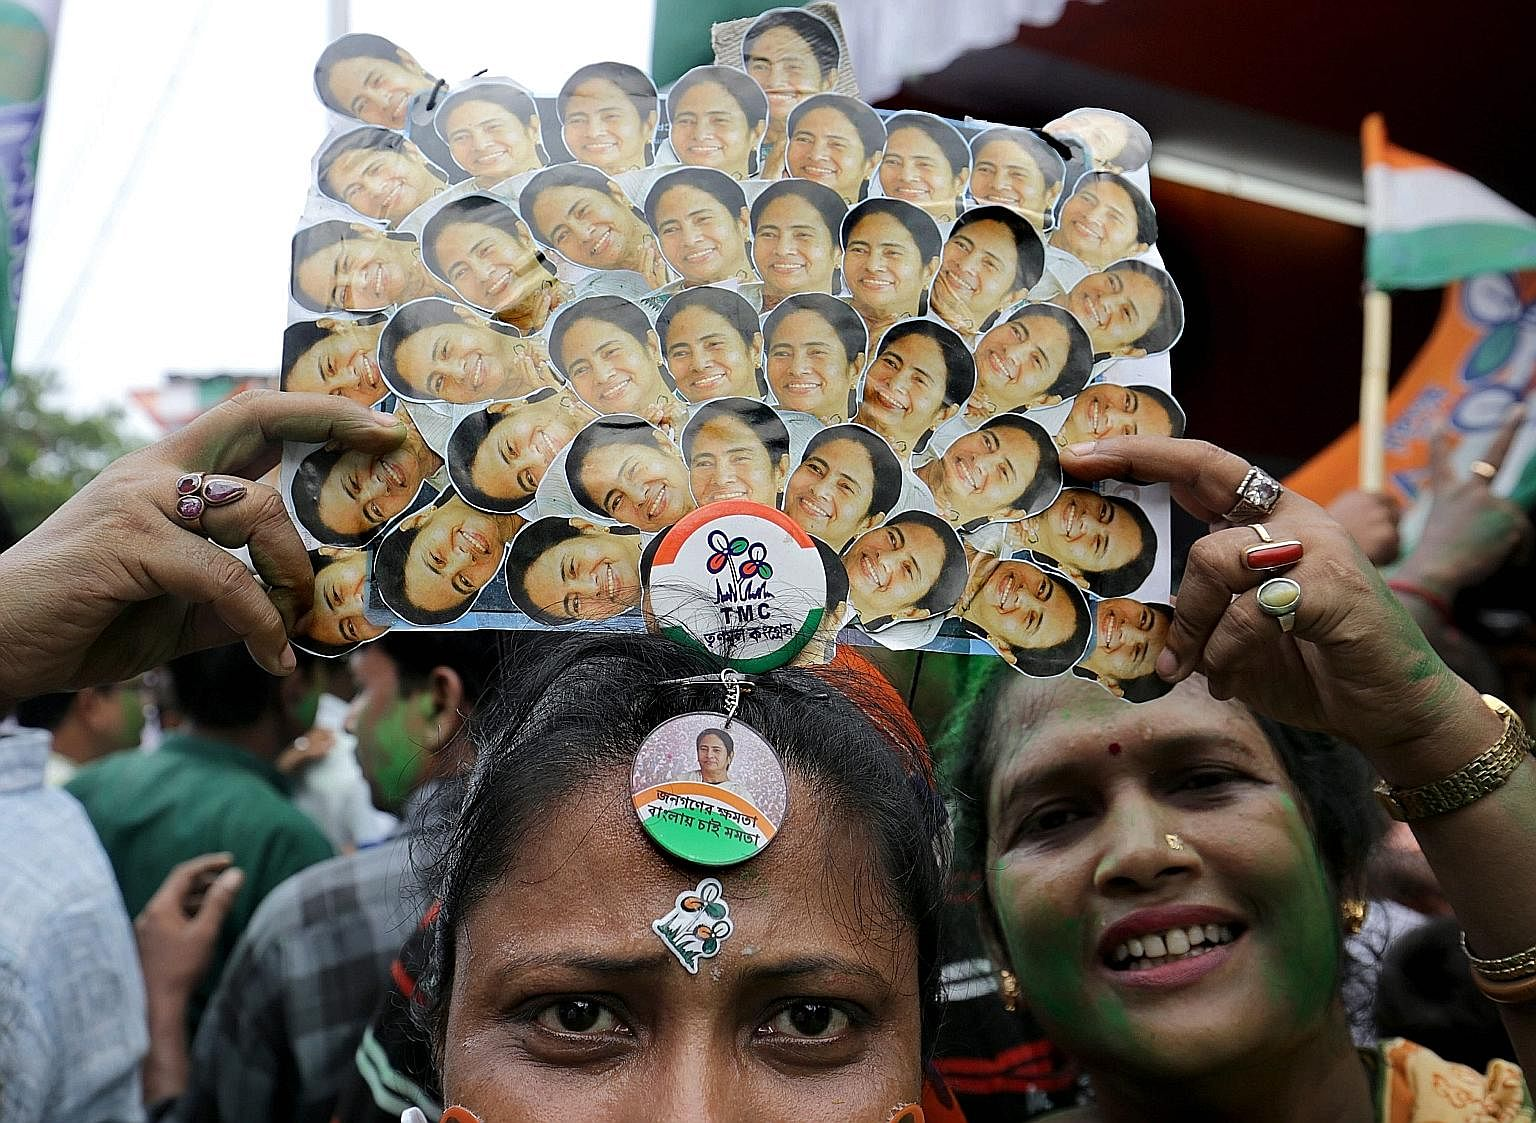 A Trinamool Congress party supporter wears a crown made out of Chief Minister Mamata Banerjee's photos during celebrations after she won an absolute majority in the West Bengal Assembly election in Kolkata.